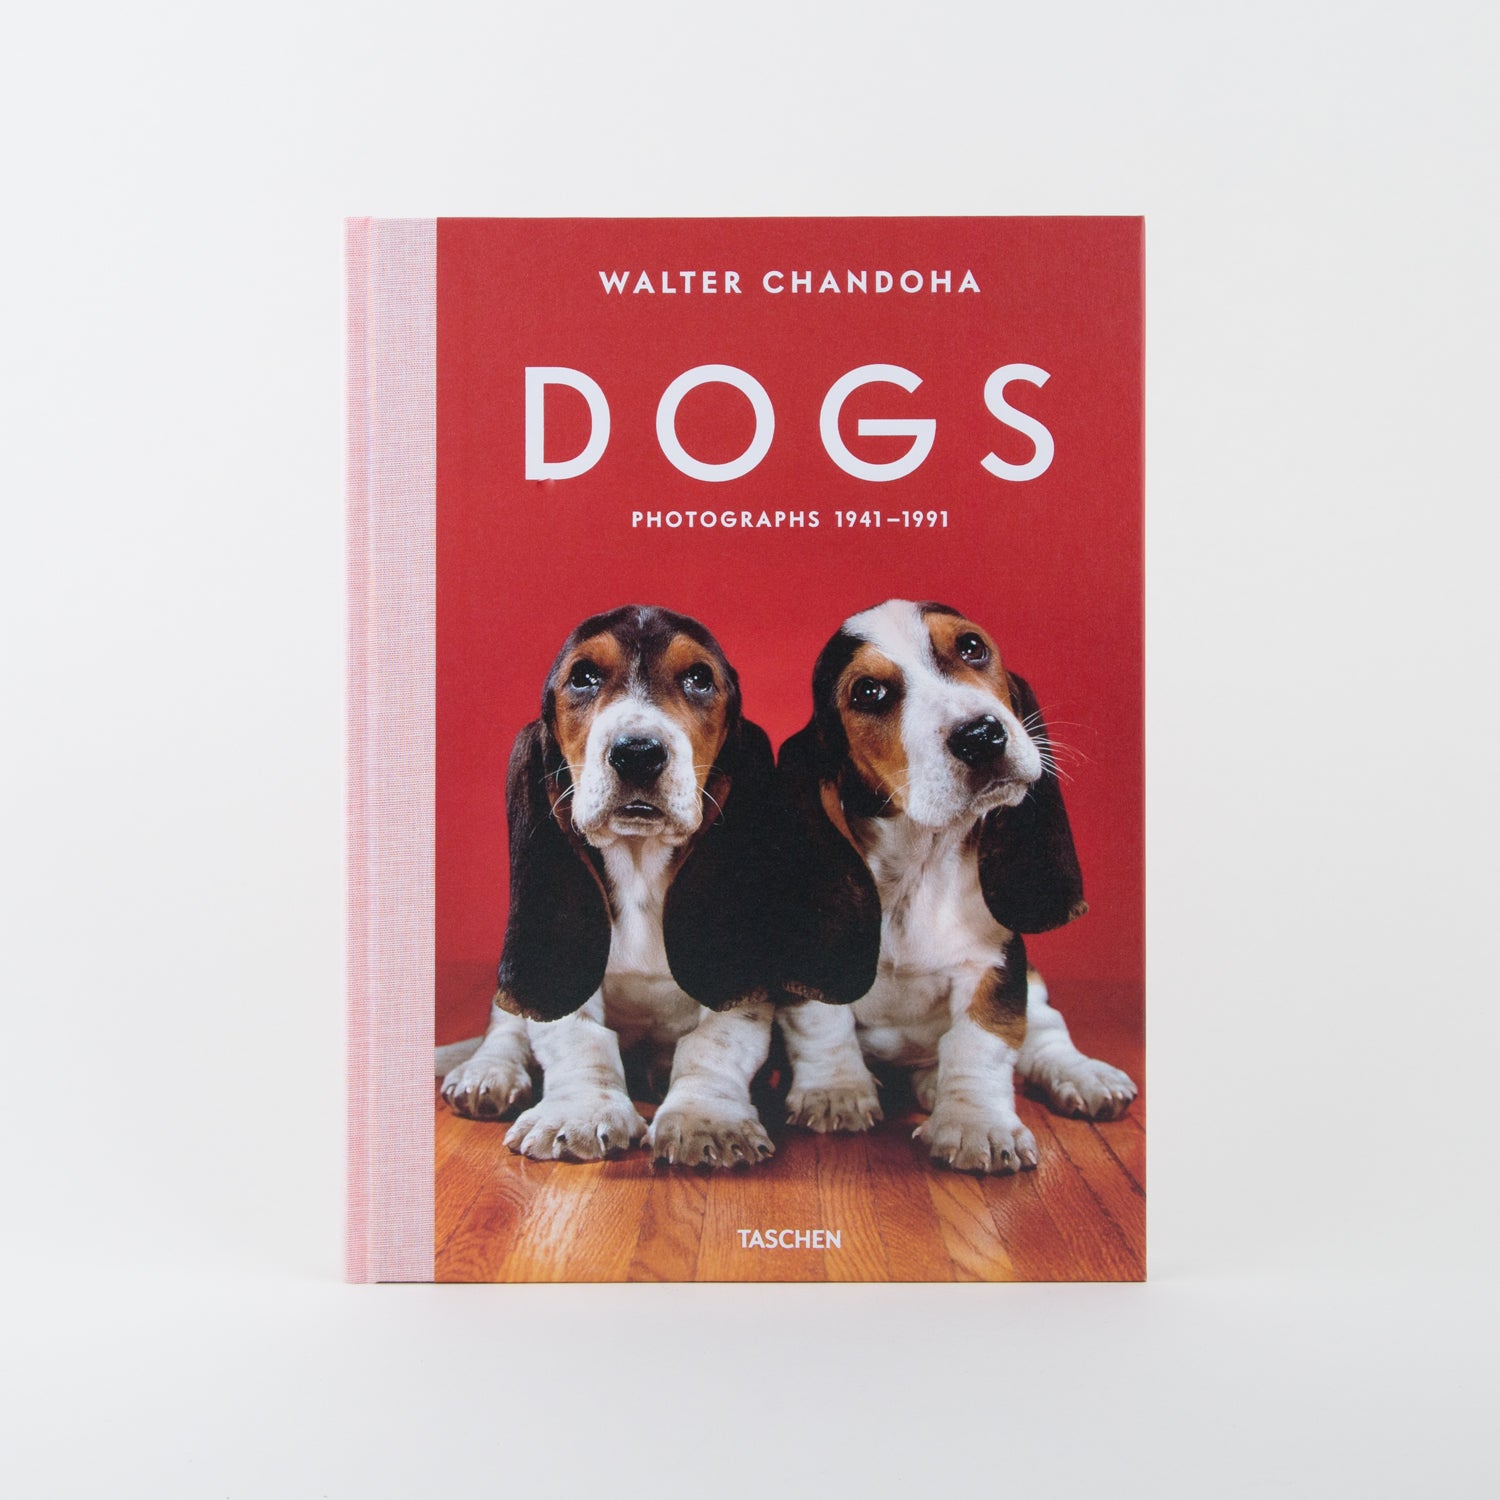 walter chandoha dogs photographs book at Secret Location